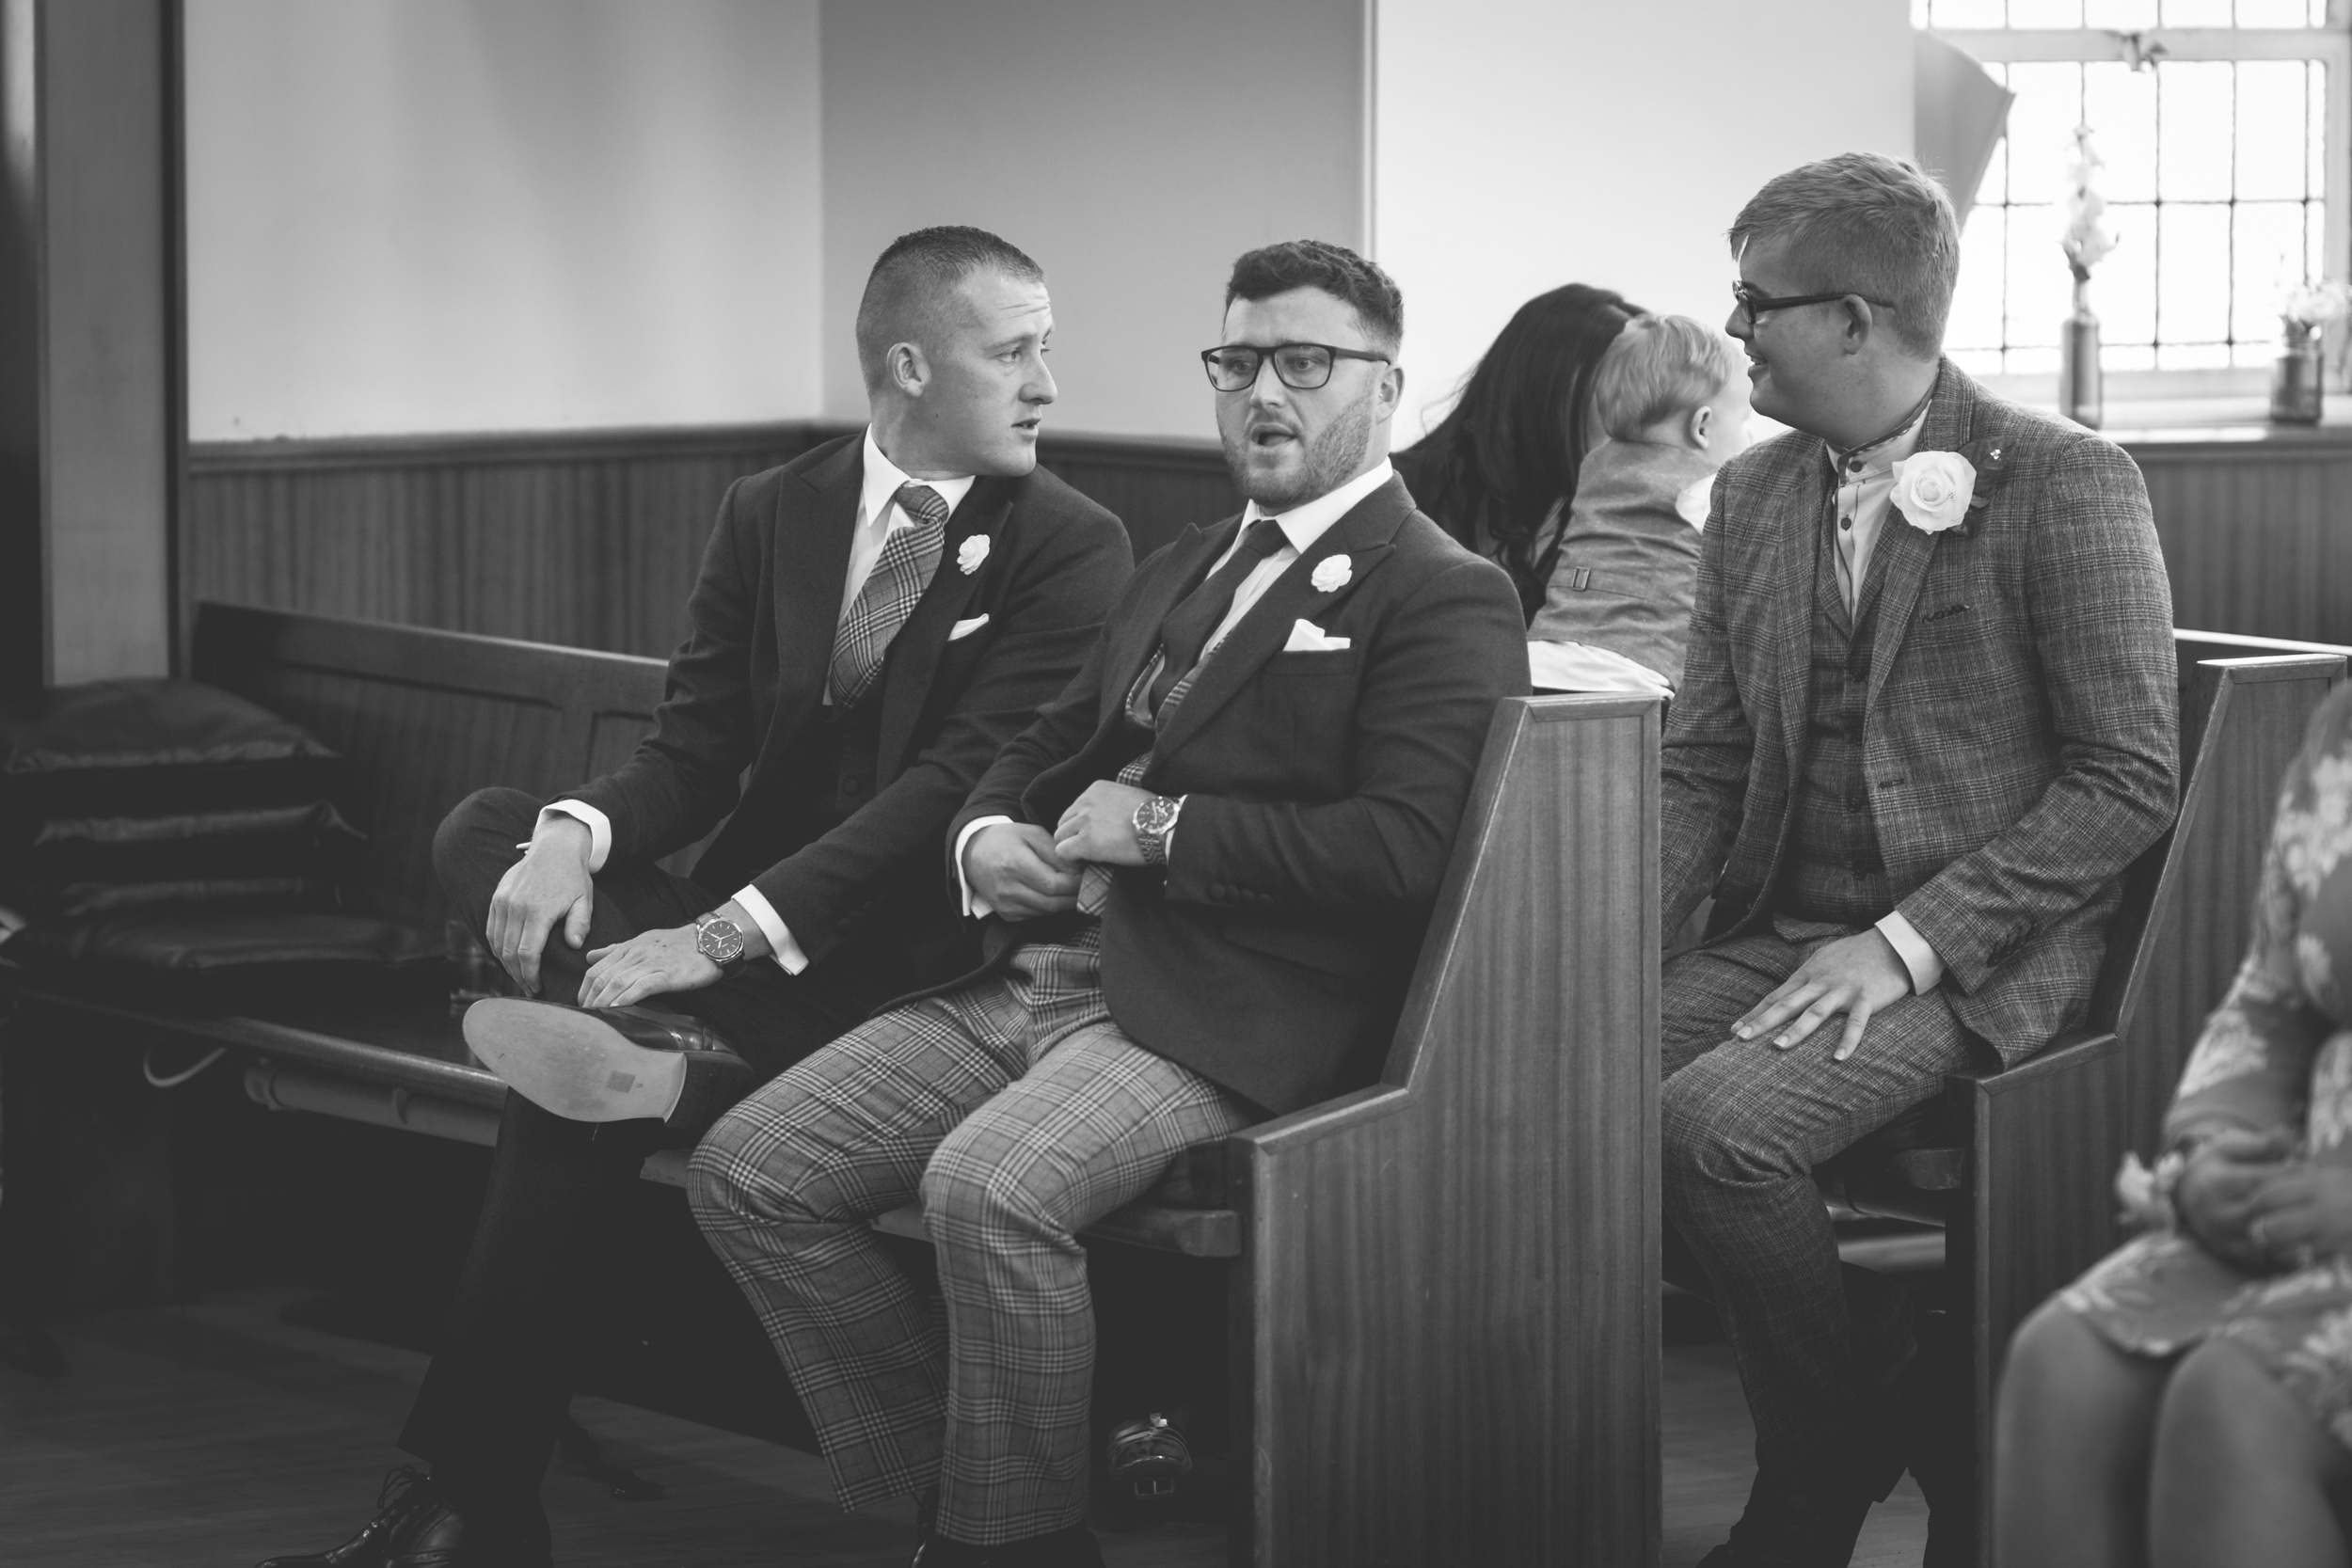 Brian McEwan | Northern Ireland Wedding Photographer | Rebecca & Michael | Ceremony-2.jpg